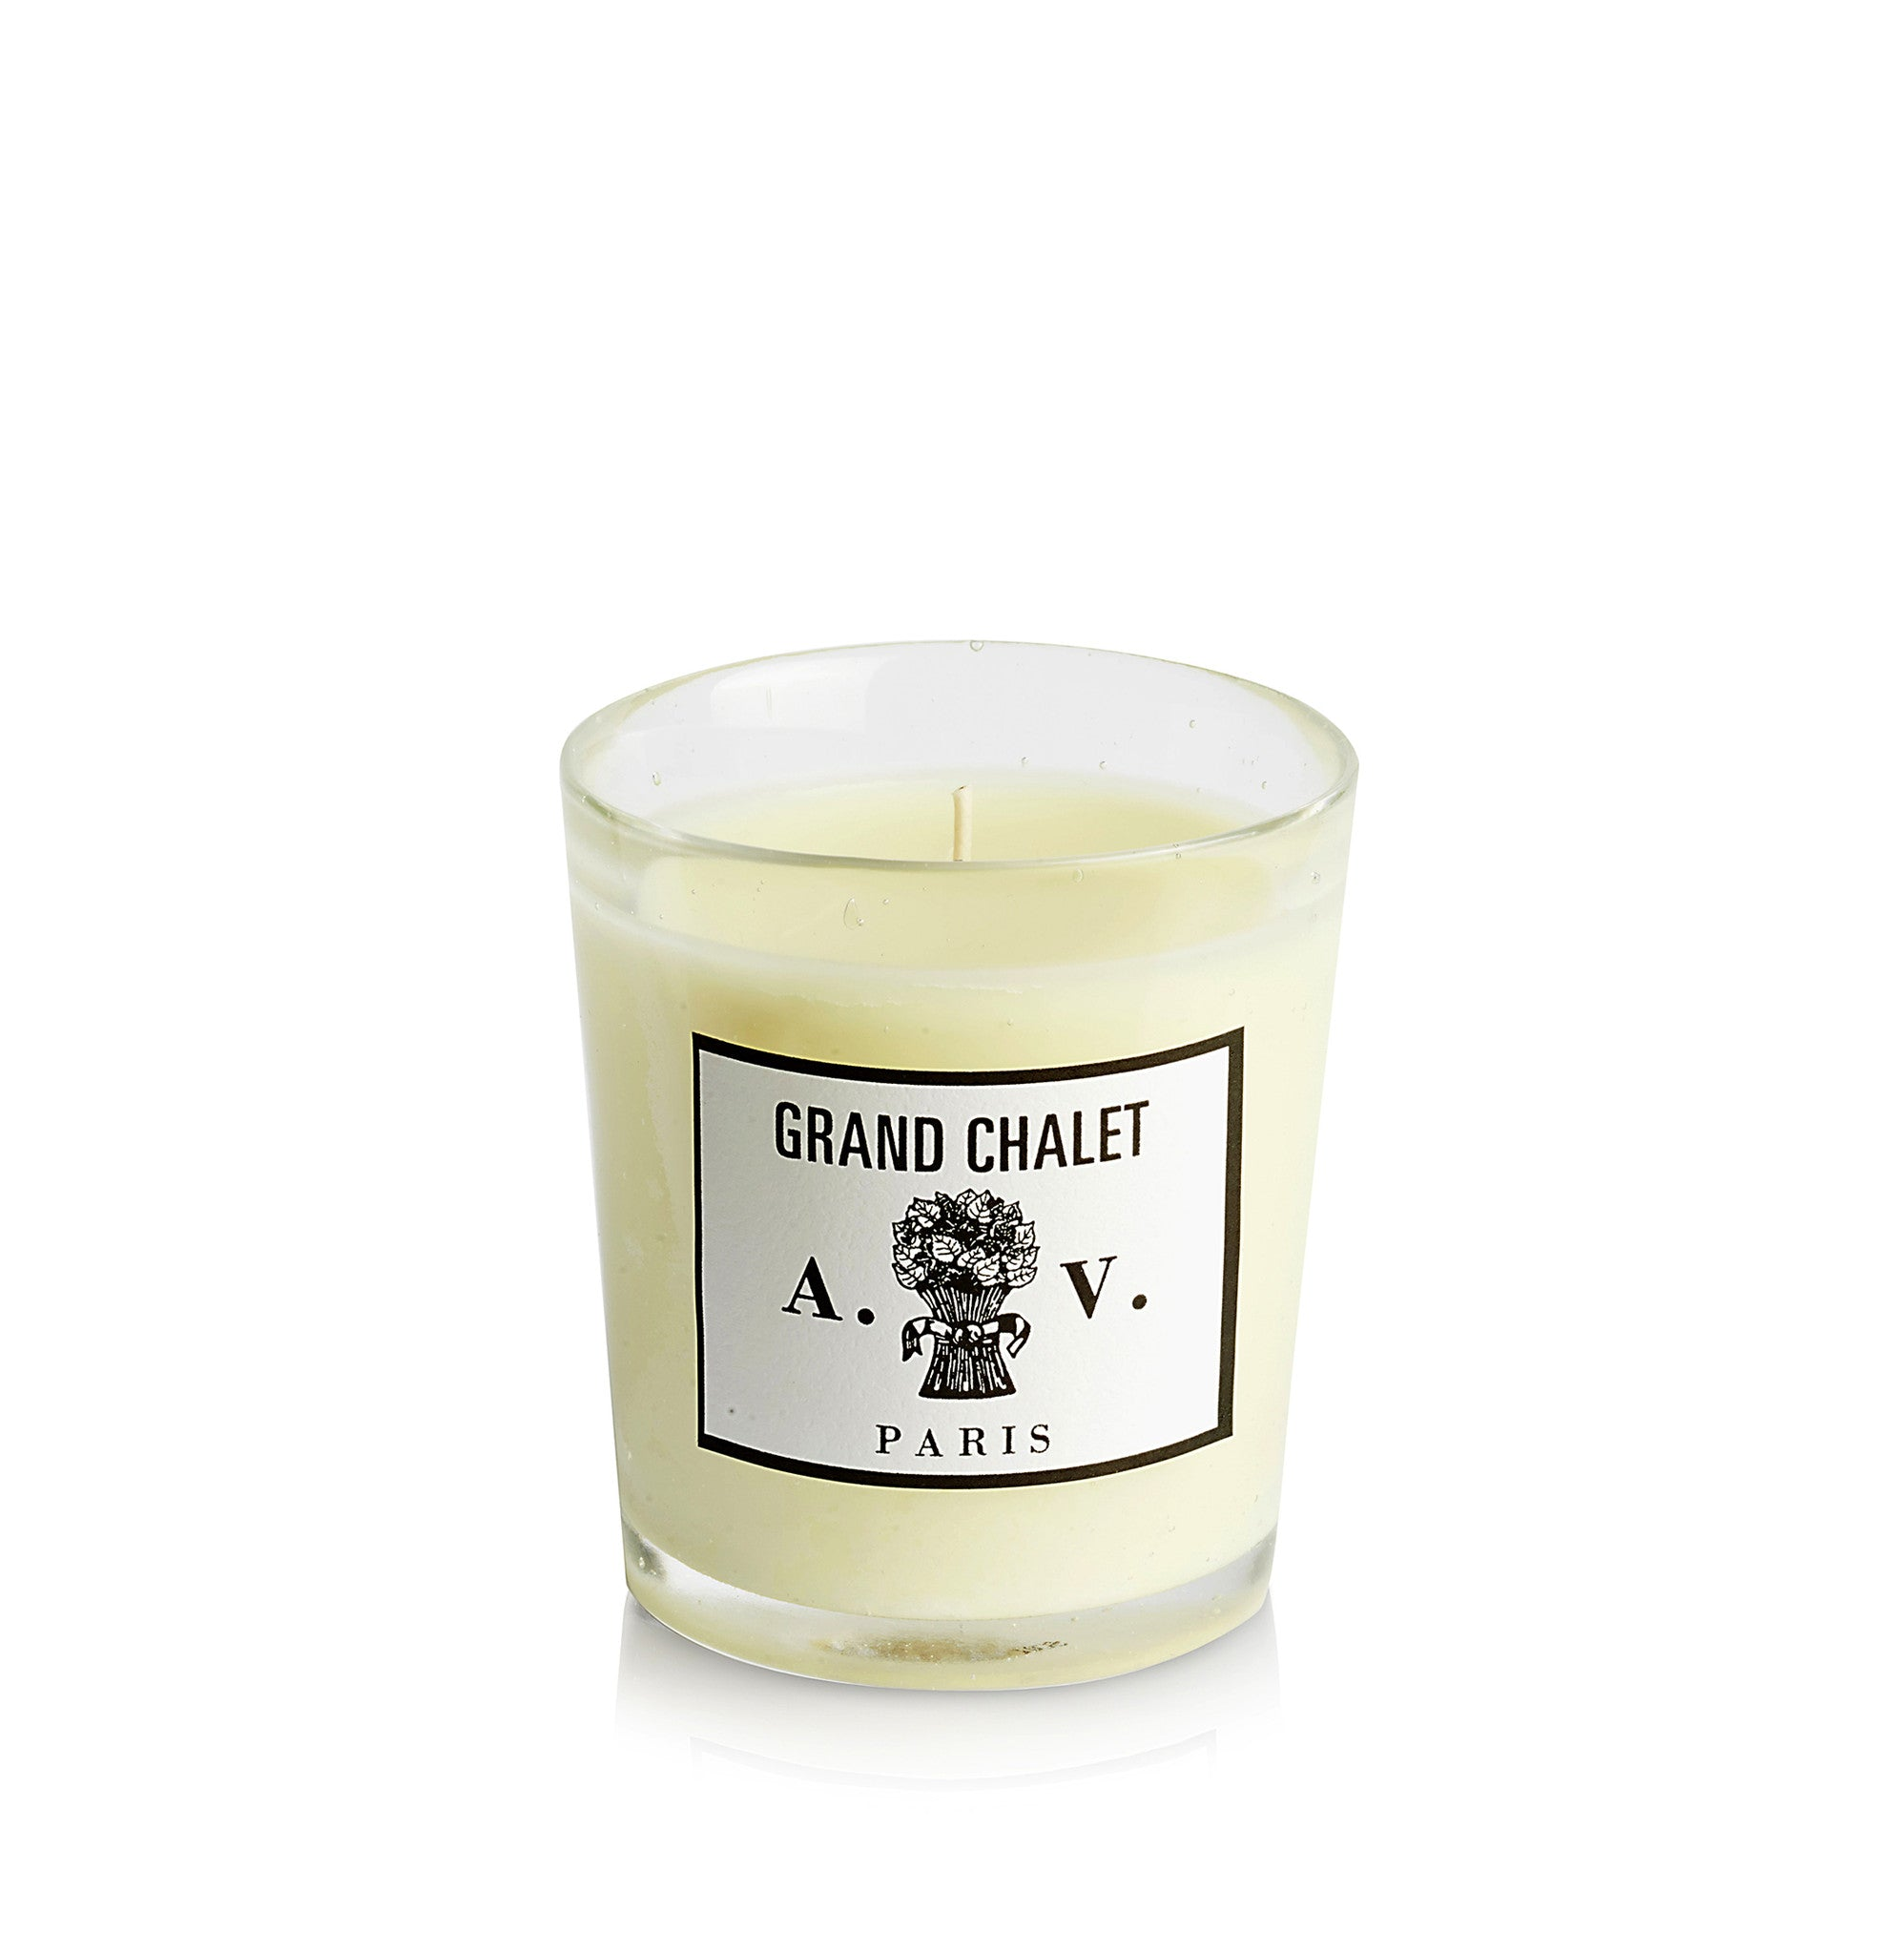 Grand Chalet Candle by Astier de Villatte